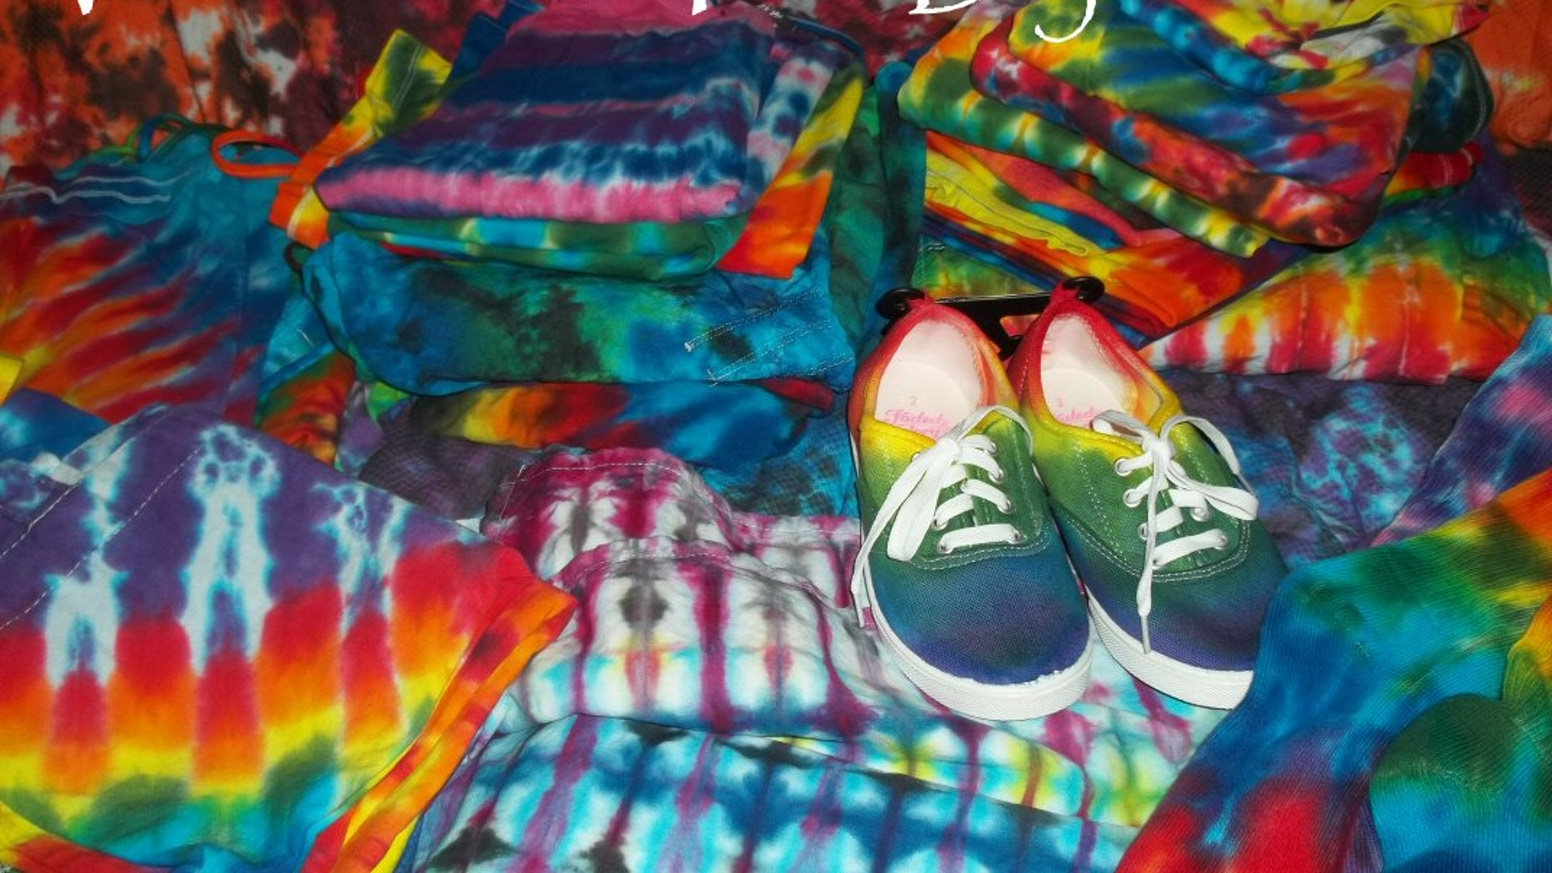 I want to start a Tie Dye company. We plan to sell at local festivals!